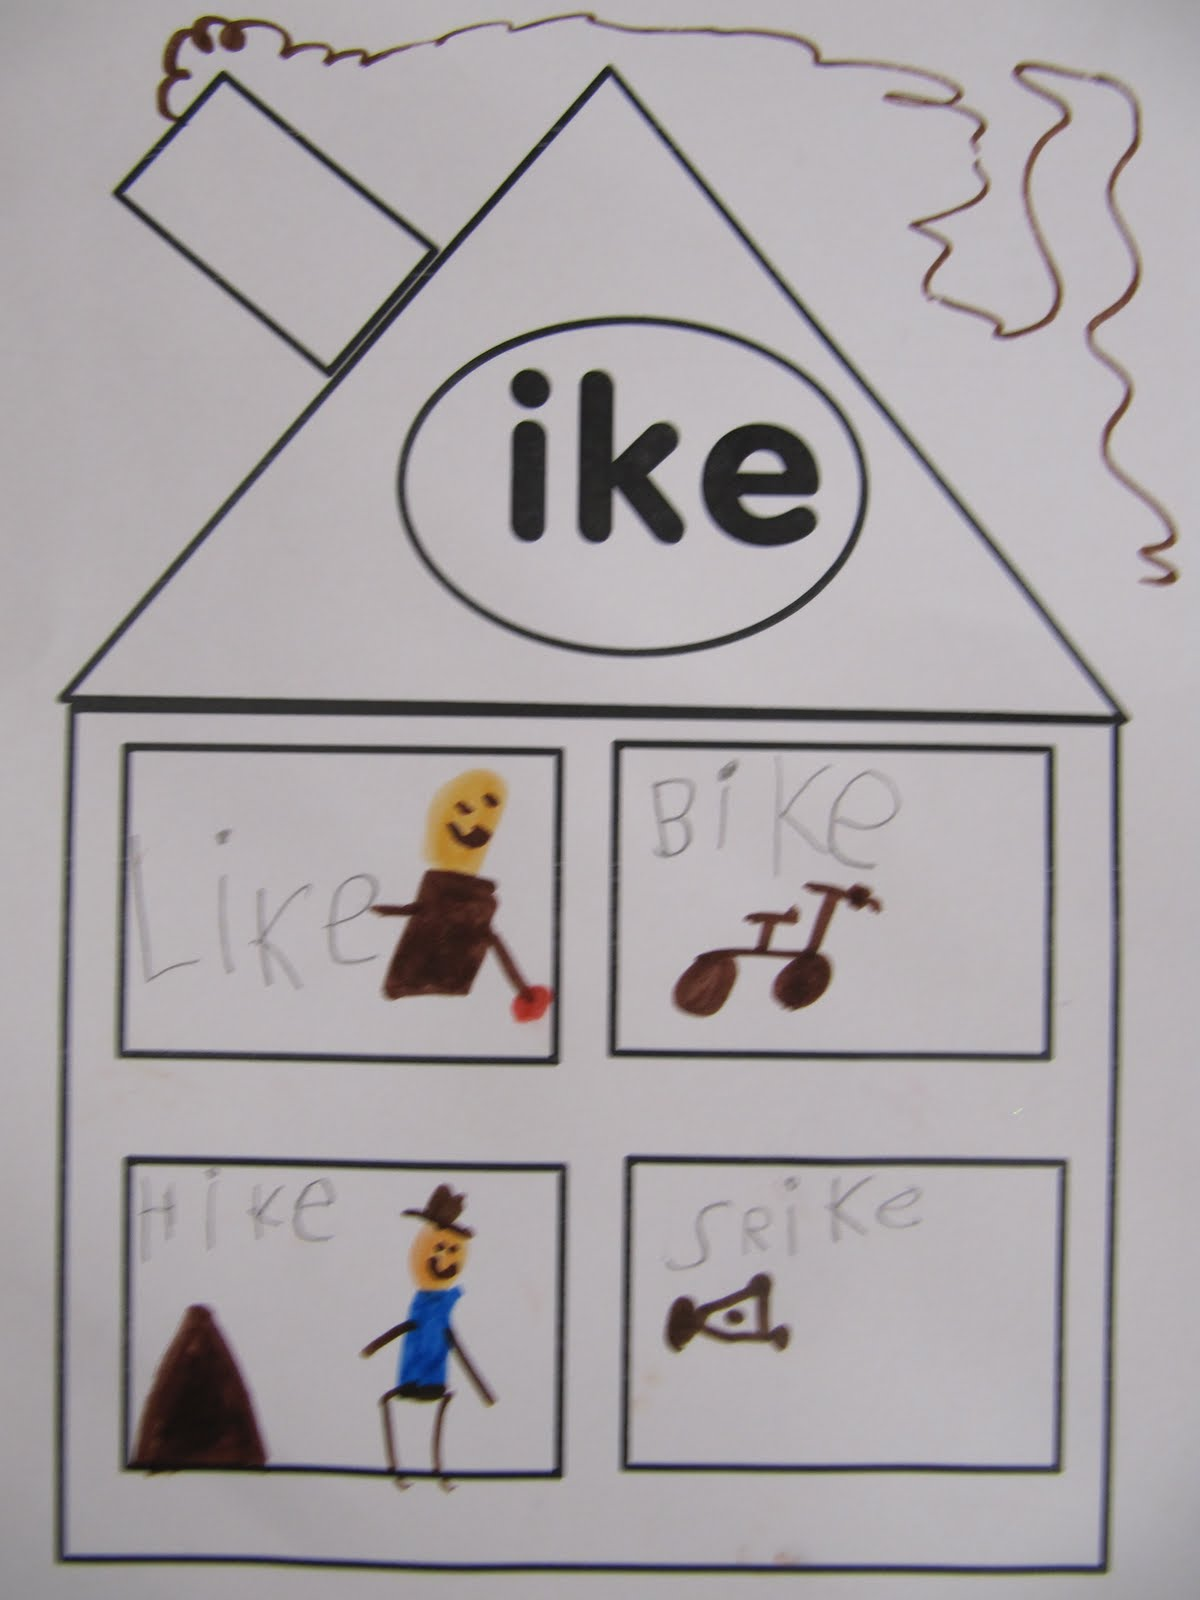 Joyful Learning In Kc Word Family Ike